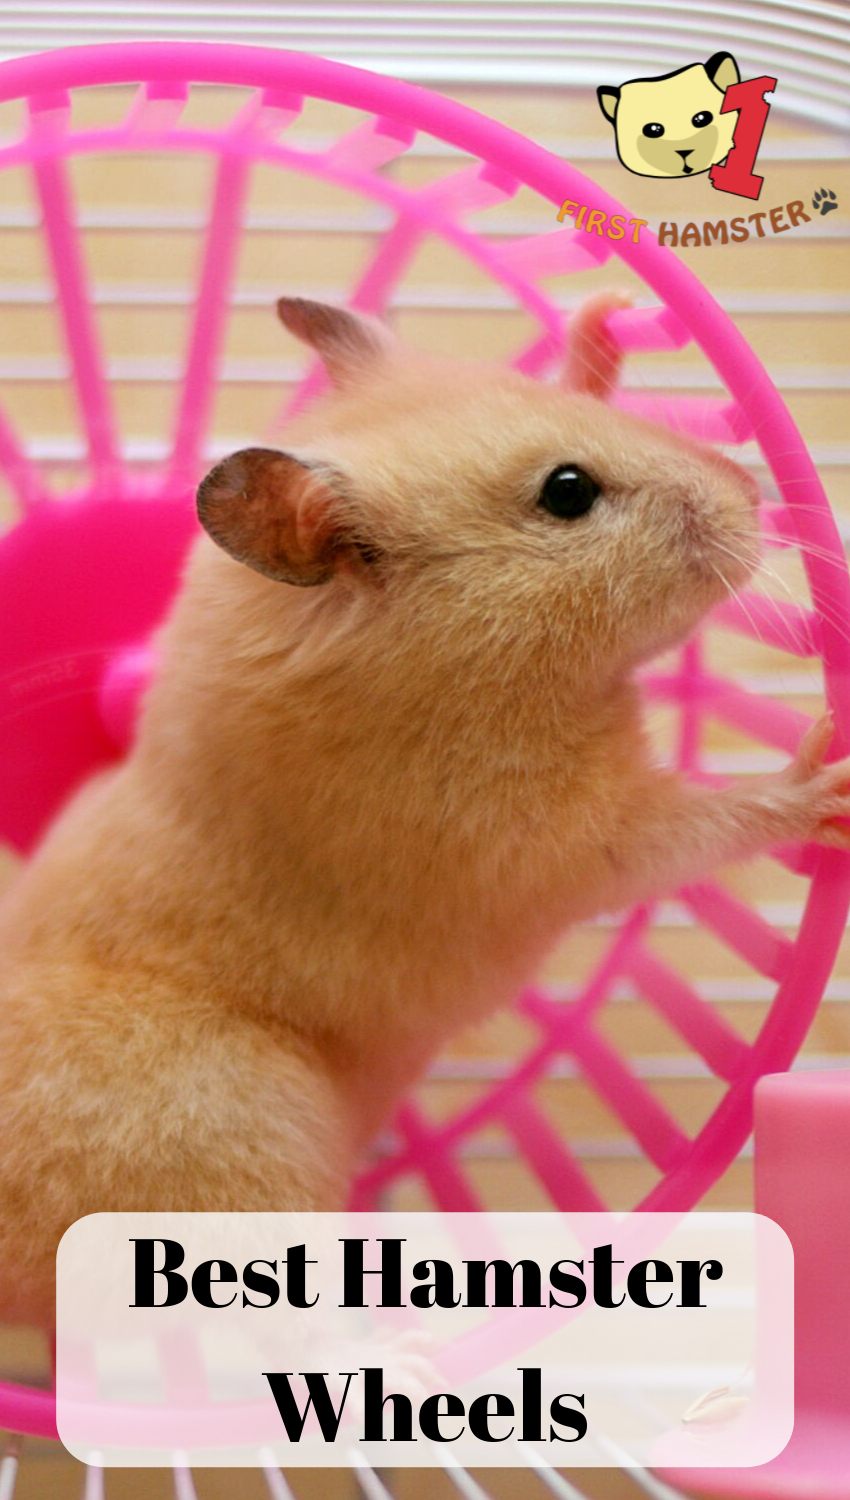 4 Best Hamster Wheels For Syrian And Dwarf (An Owner's